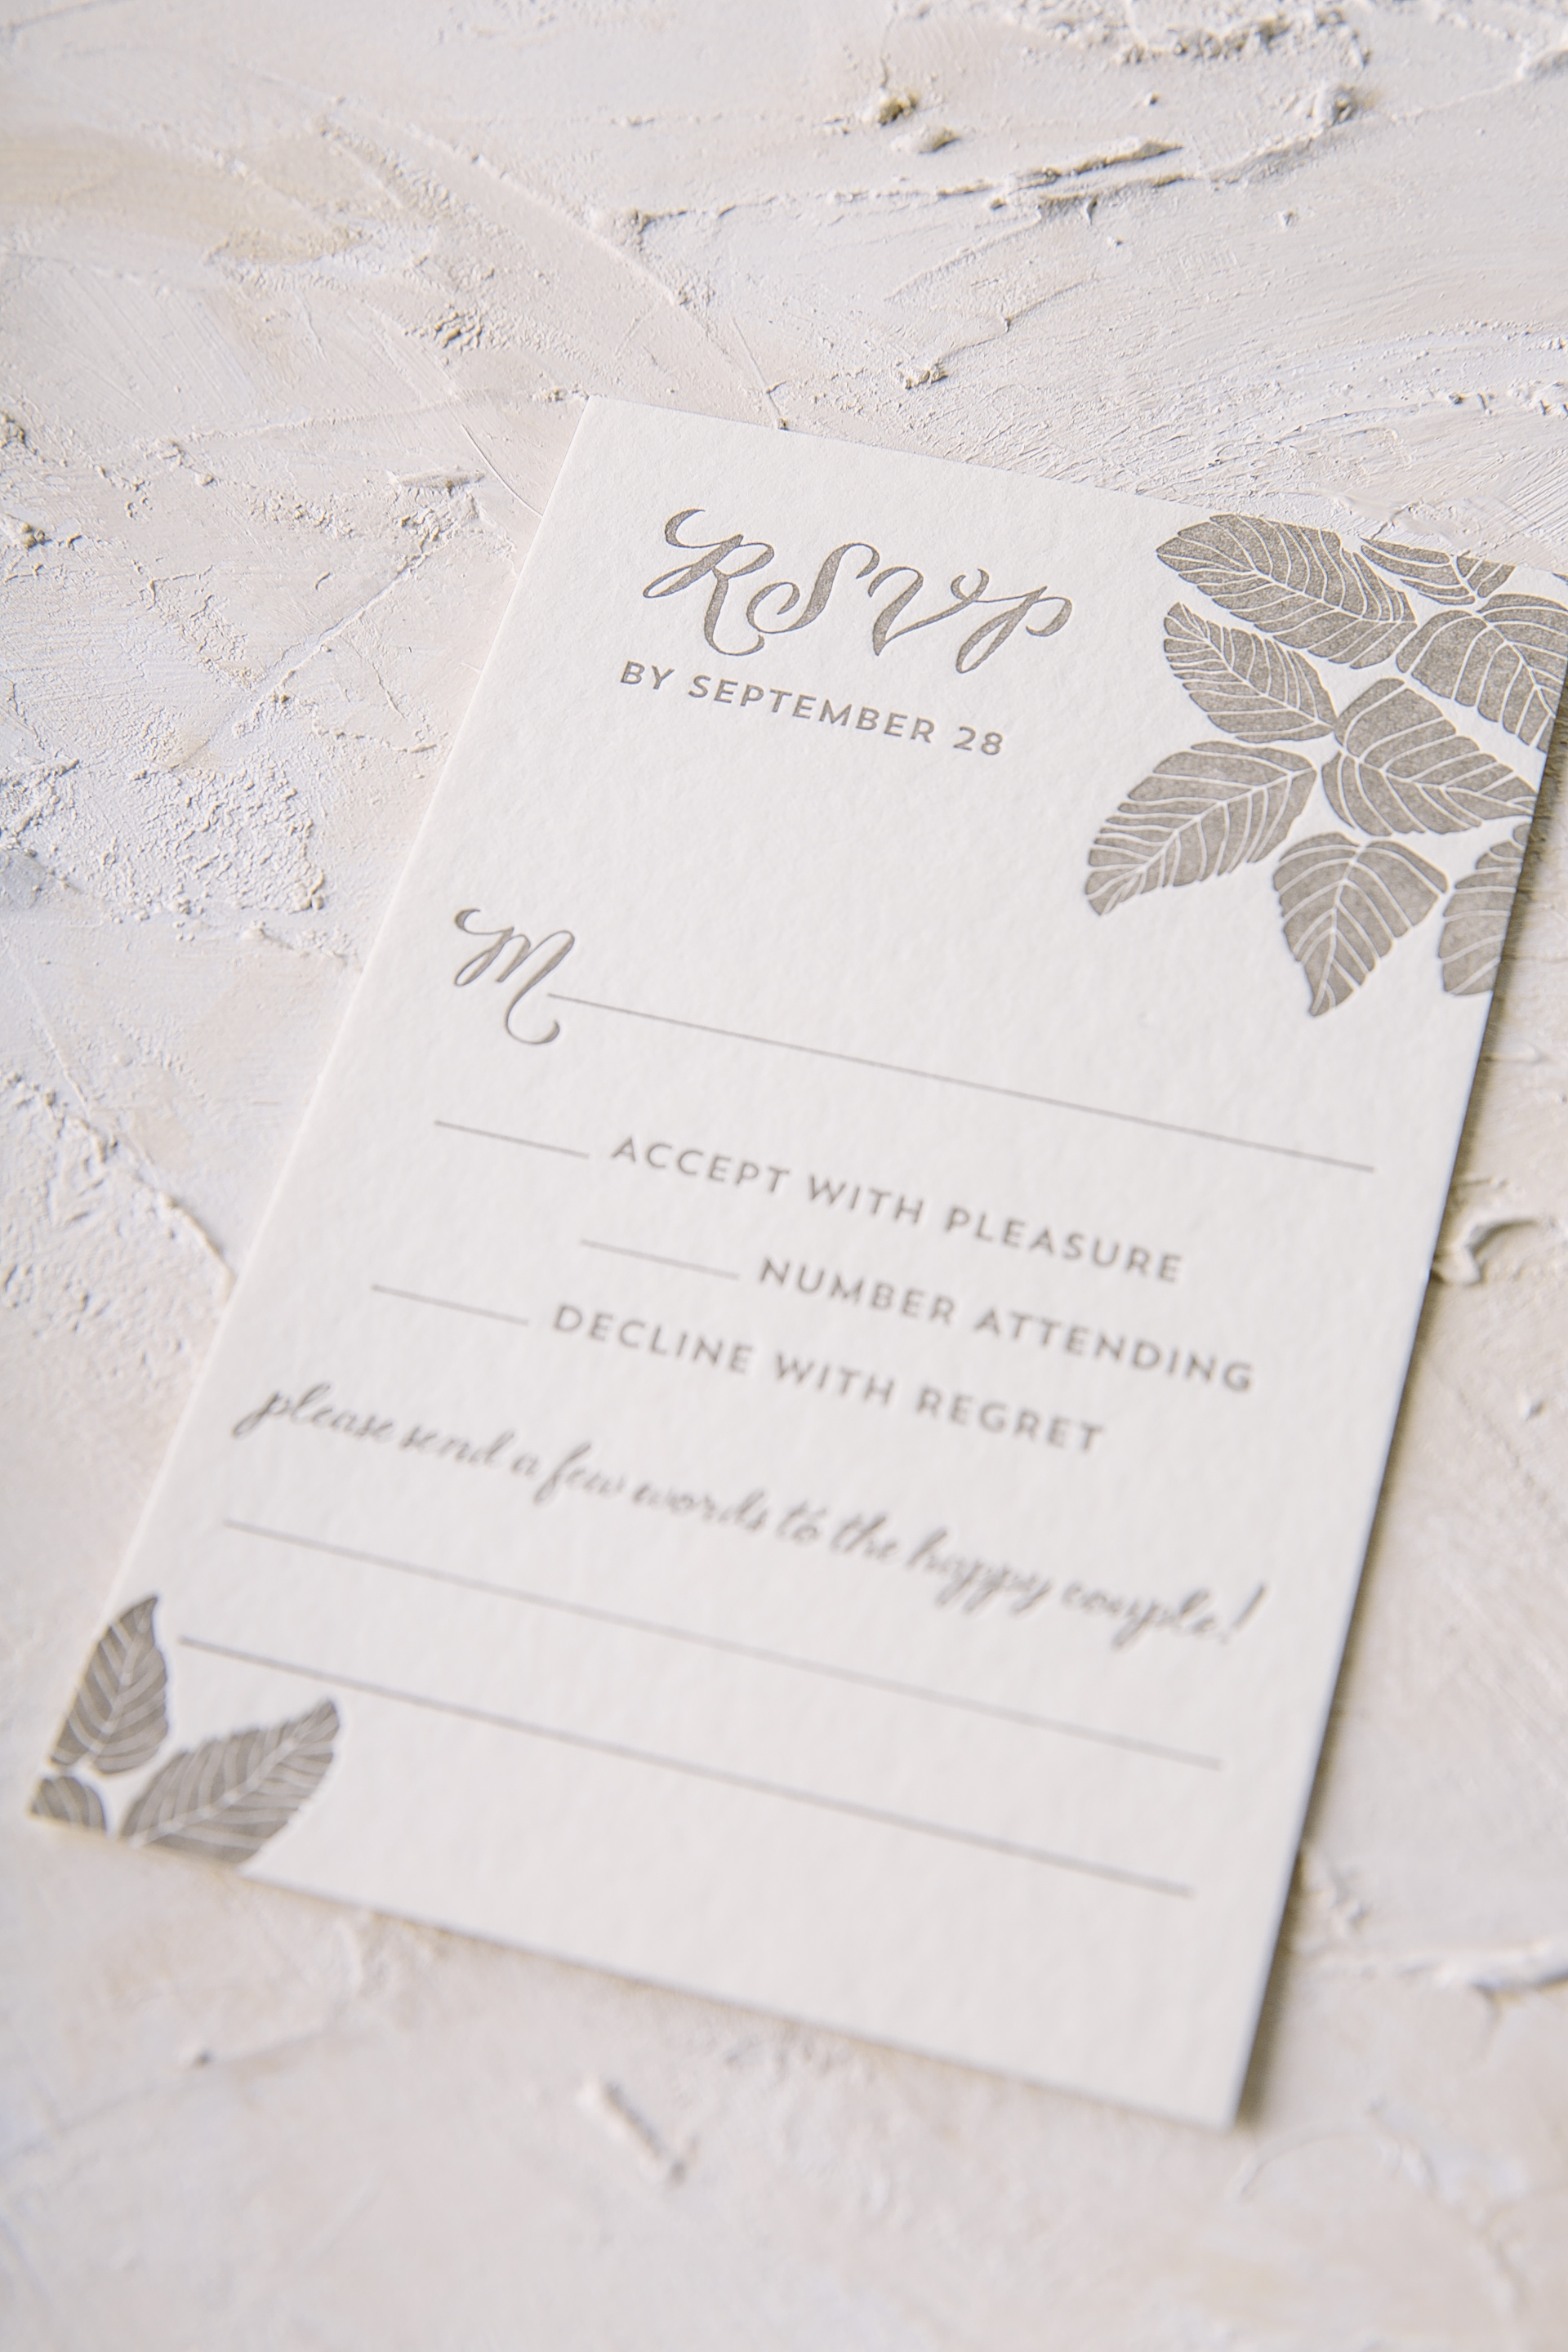 Refined letterpress wedding invitations with rustic flair from Smock